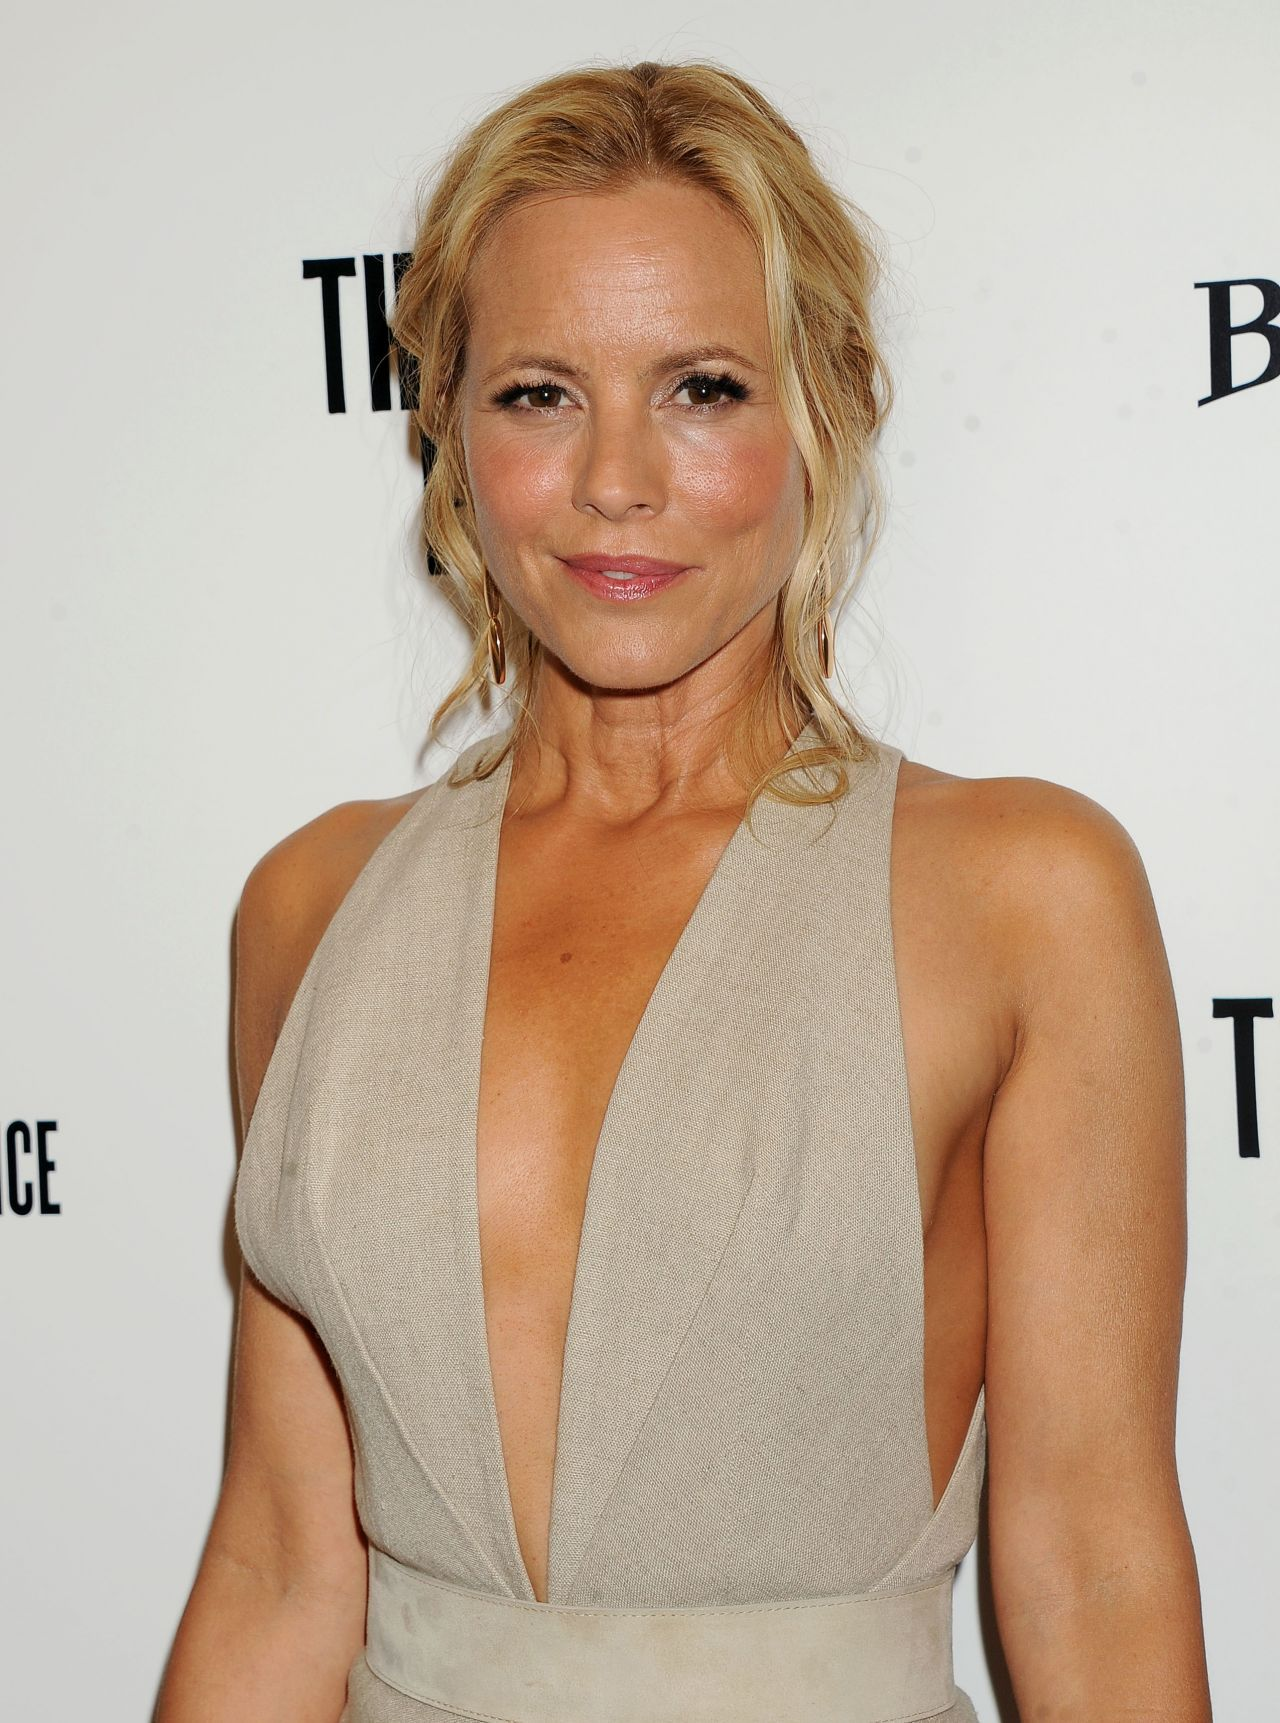 Maria Bello nude photos 2019